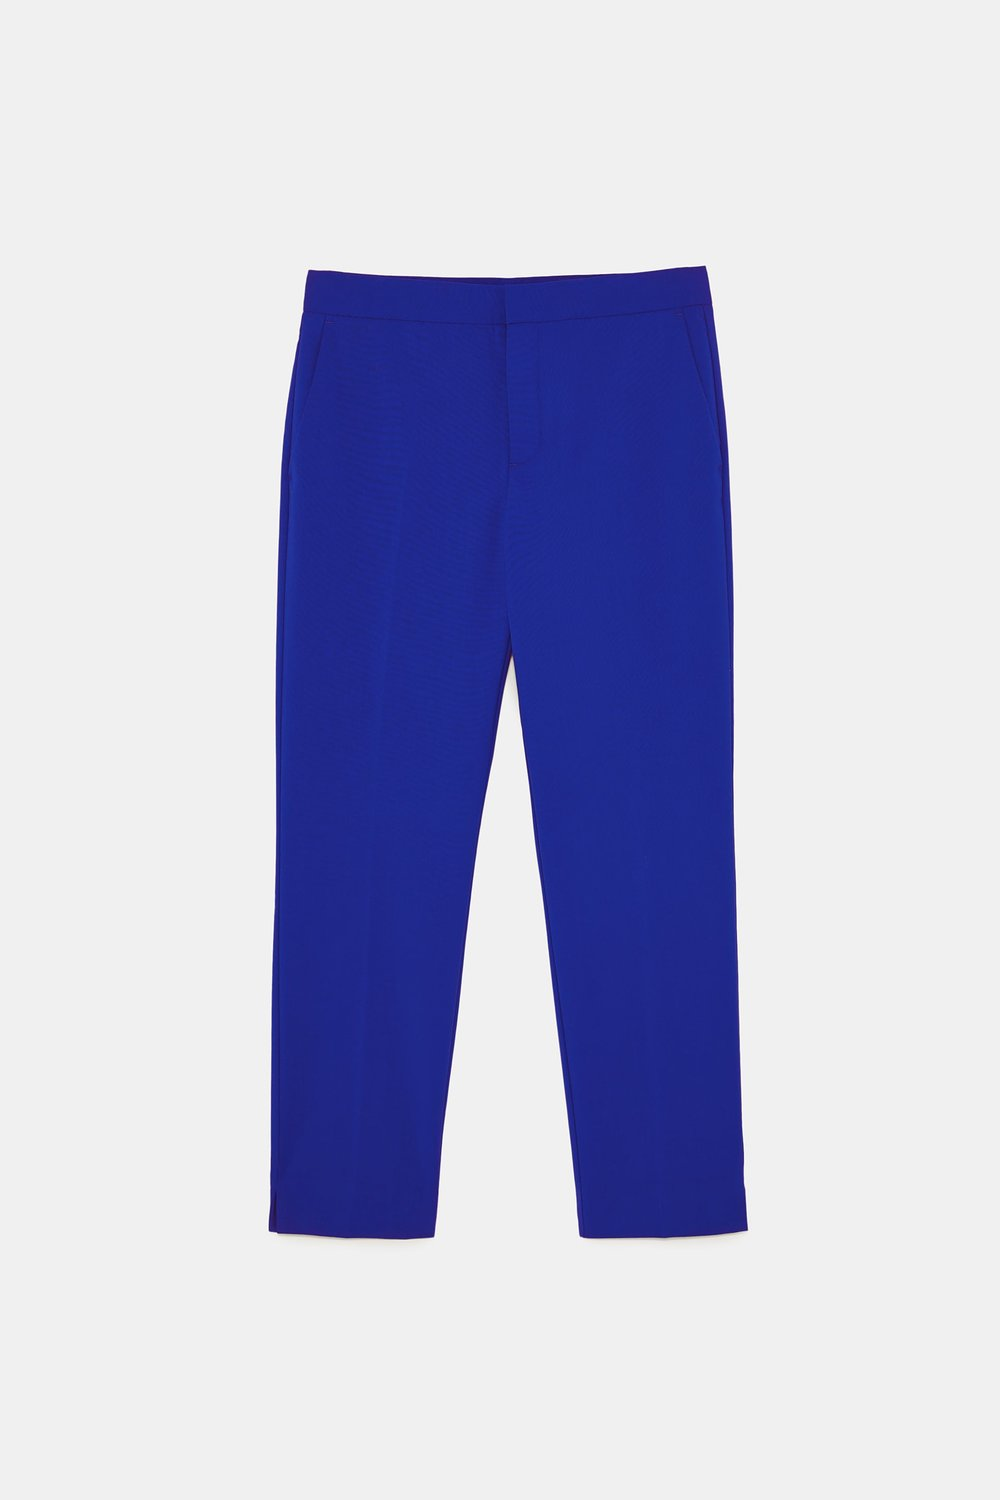 https://www.zara.com/ca/en/ankle-cropped-pants-p02093335.html?v1=6849643&v2=1074677